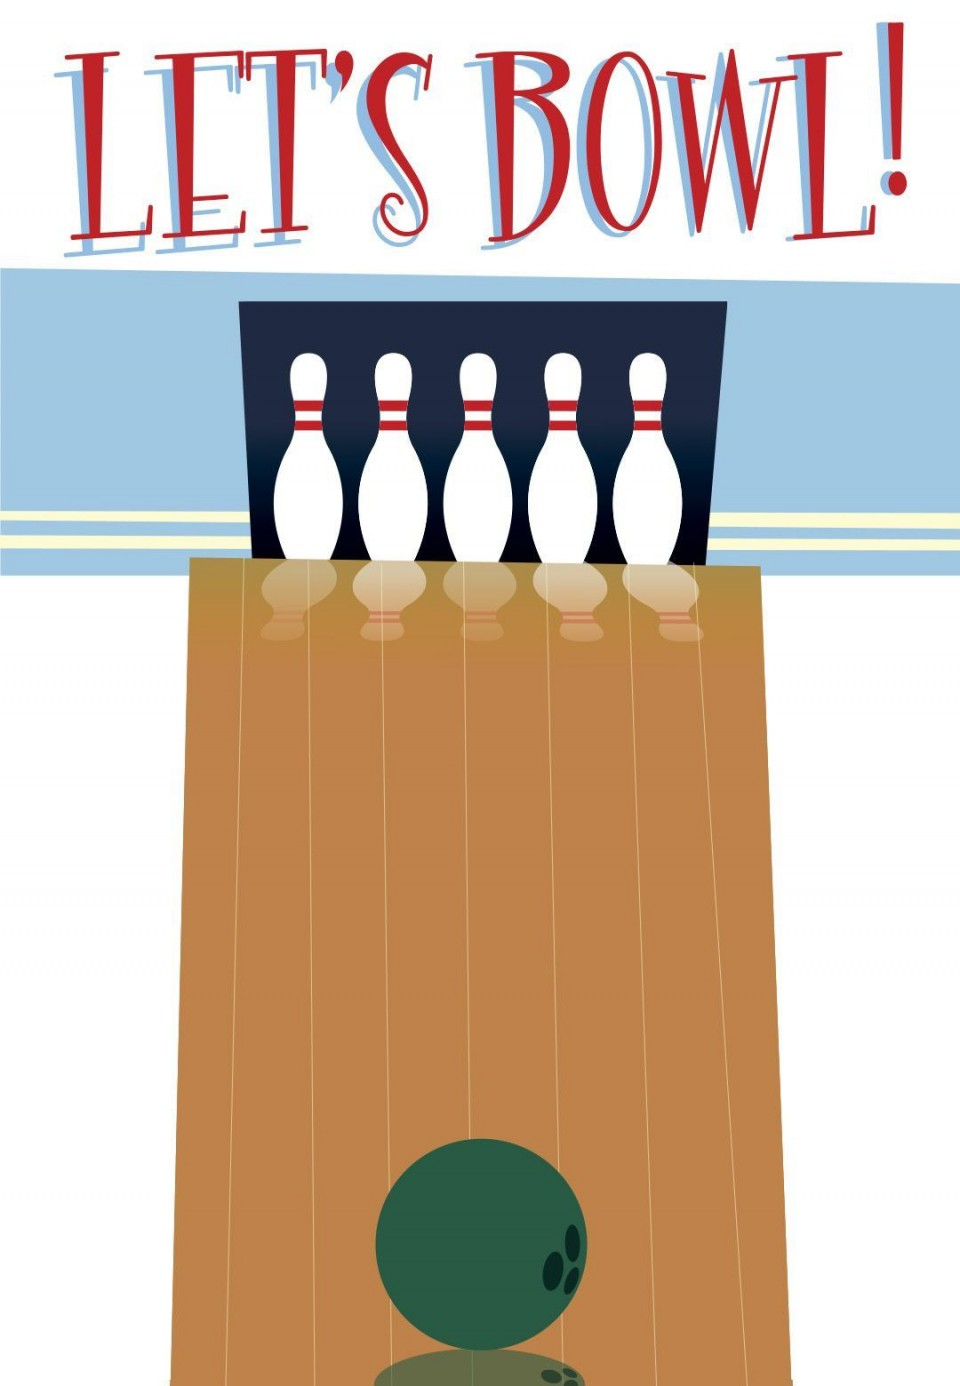 004 Magnificent Bowling Party Invite Printable Free Highest Quality  Birthday Invitation960